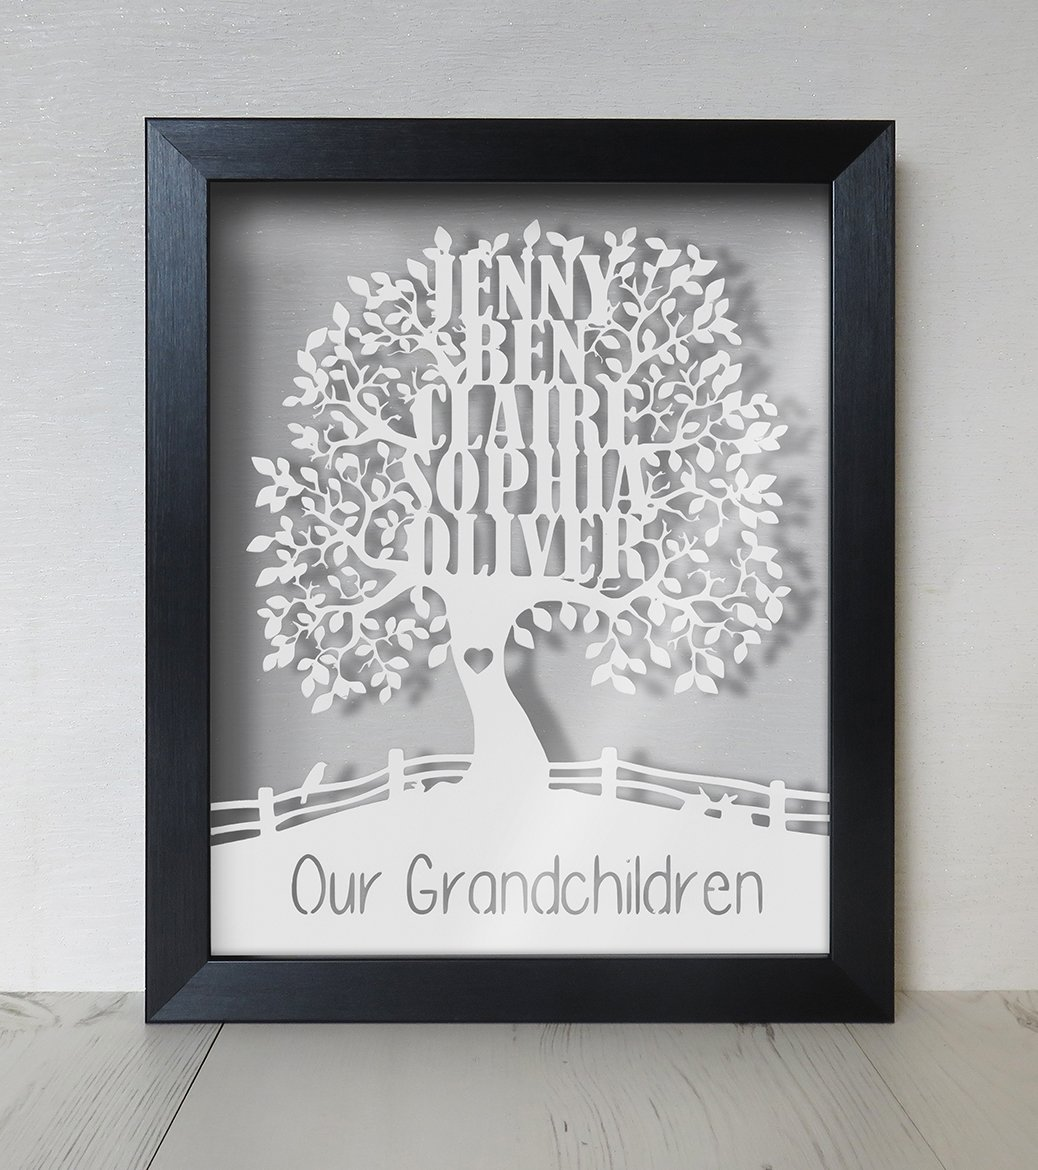 Personalised family tree floating frame paper cut light oak frame personalised family tree floating frame paper cut light oak frame amazon kitchen home jeuxipadfo Images